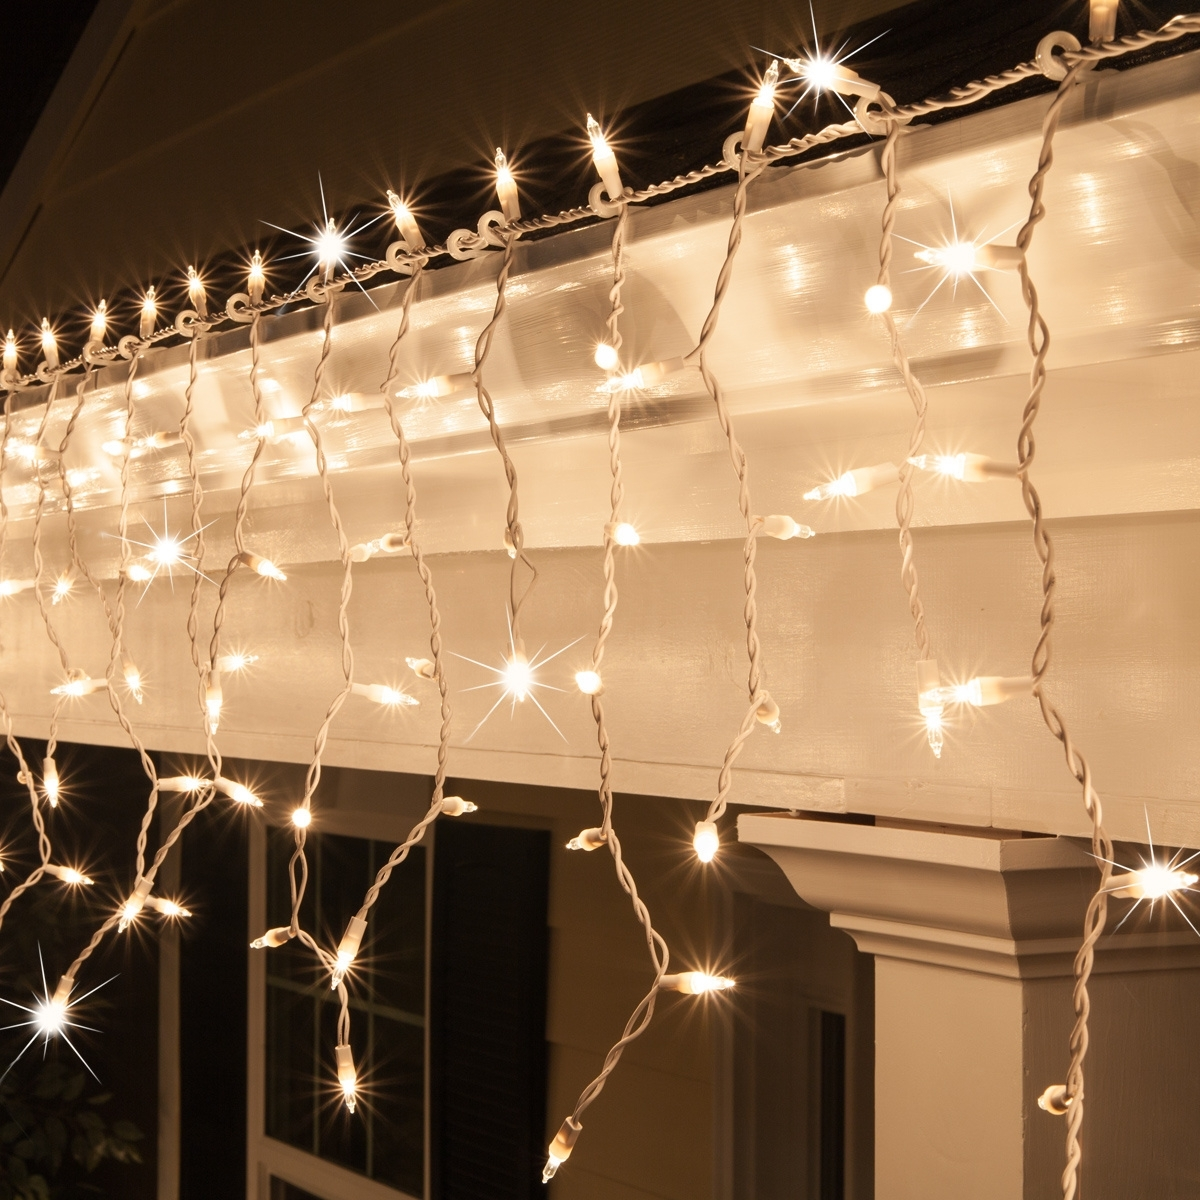 Outdoor Hanging Xmas Lights In Most Recently Released Christmas Icicle Light – 150 Clear Twinkle Icicle Lights – White Wire (View 11 of 20)